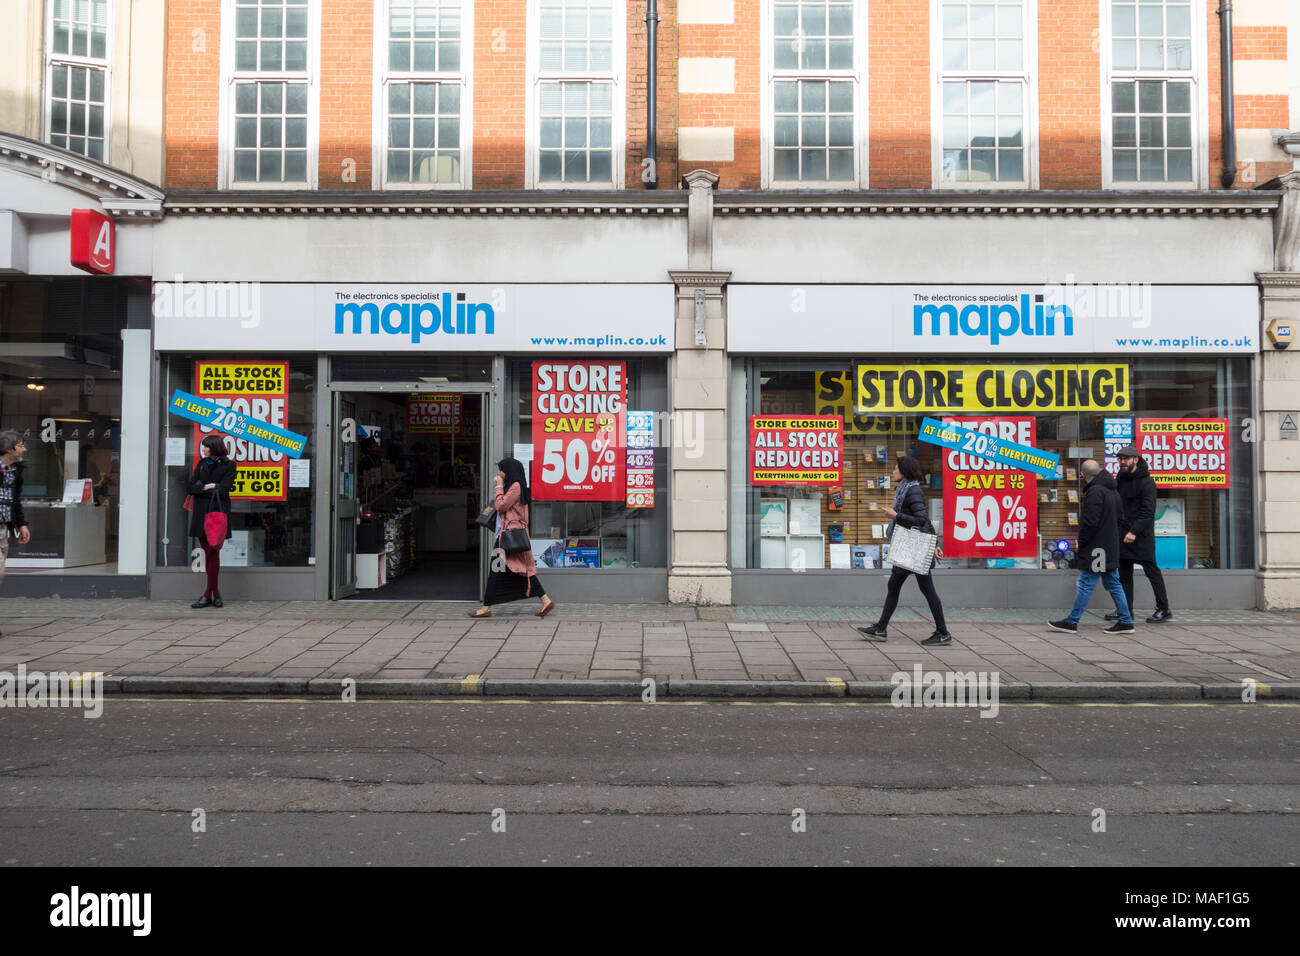 Maplin, the electronics specialist store, closing down sale on Tottenham Court Road, London, NW1, UK - Stock Image